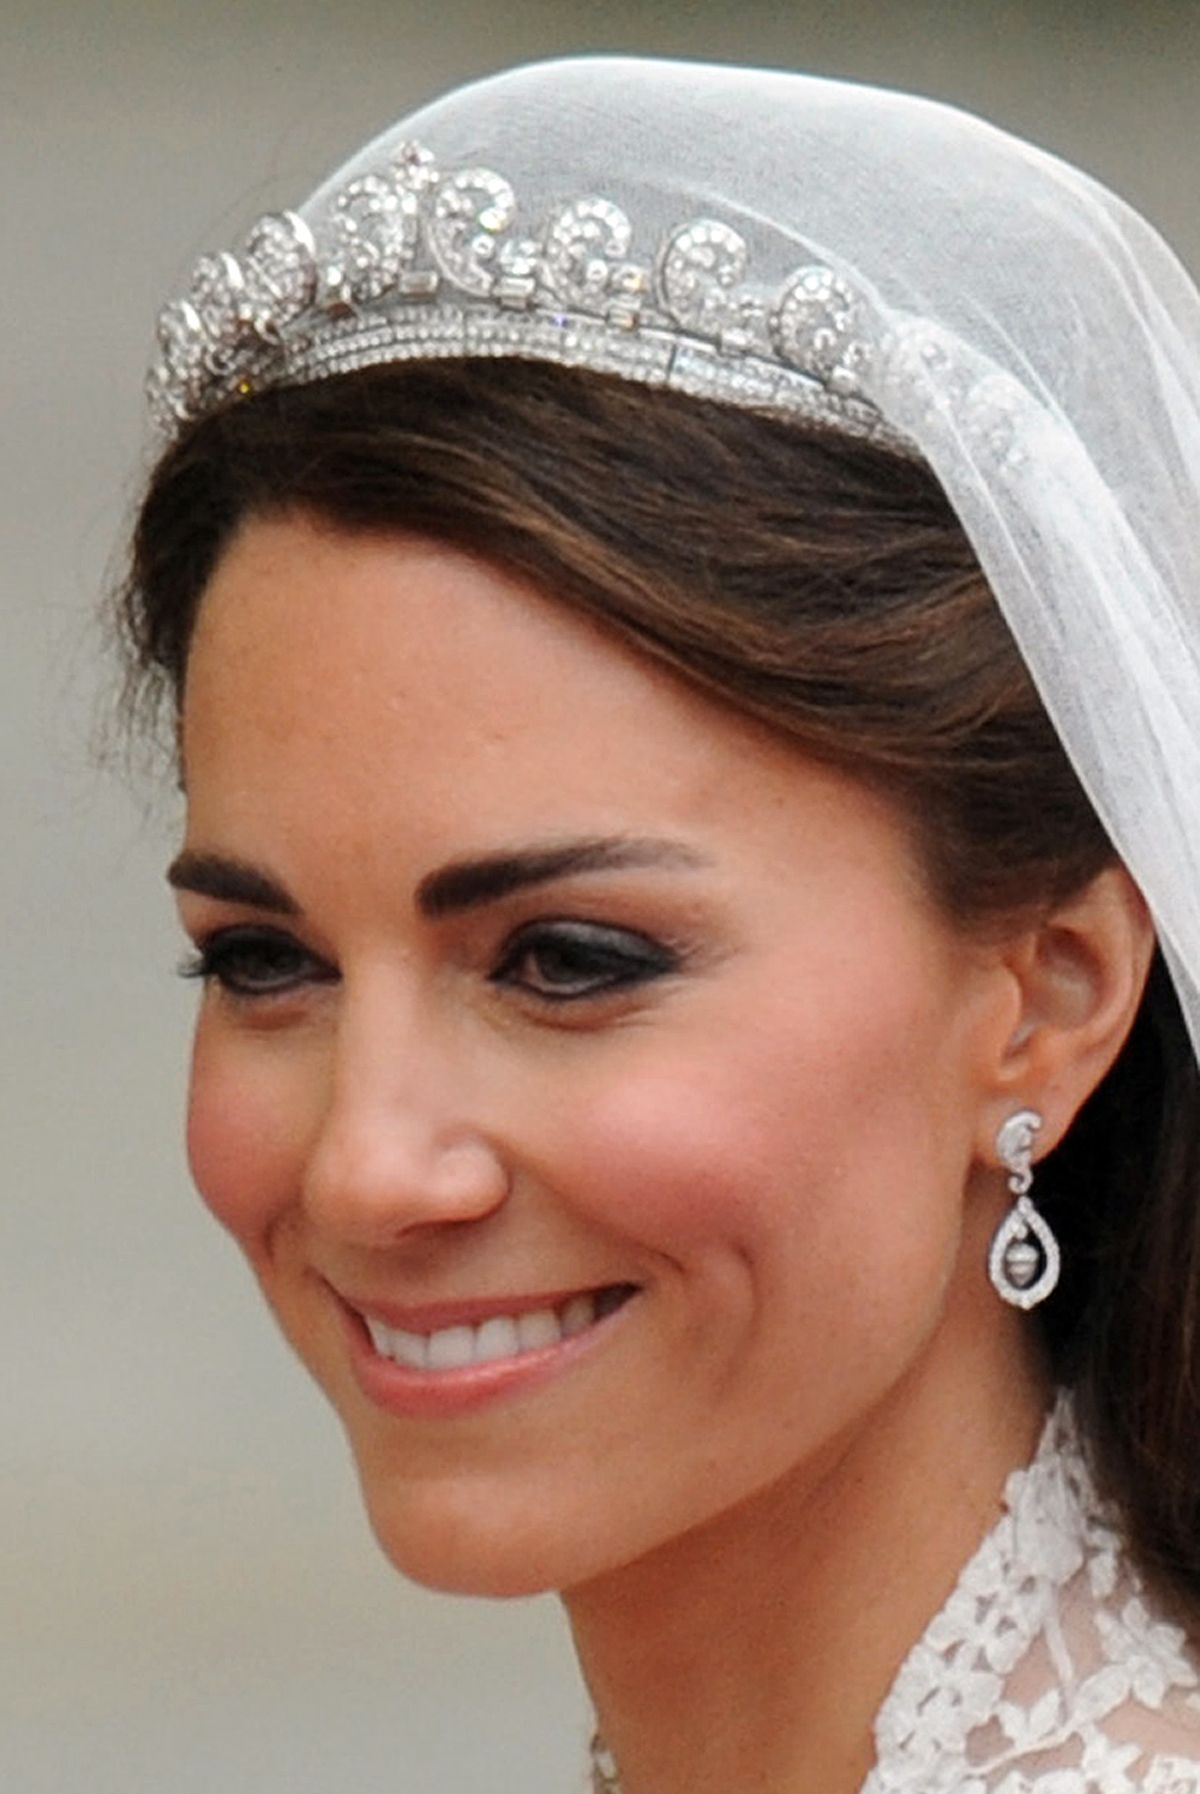 Kate Middleton Jewelry  Where To Buy Princess Kate's Earrings, Rings, And  Necklaces